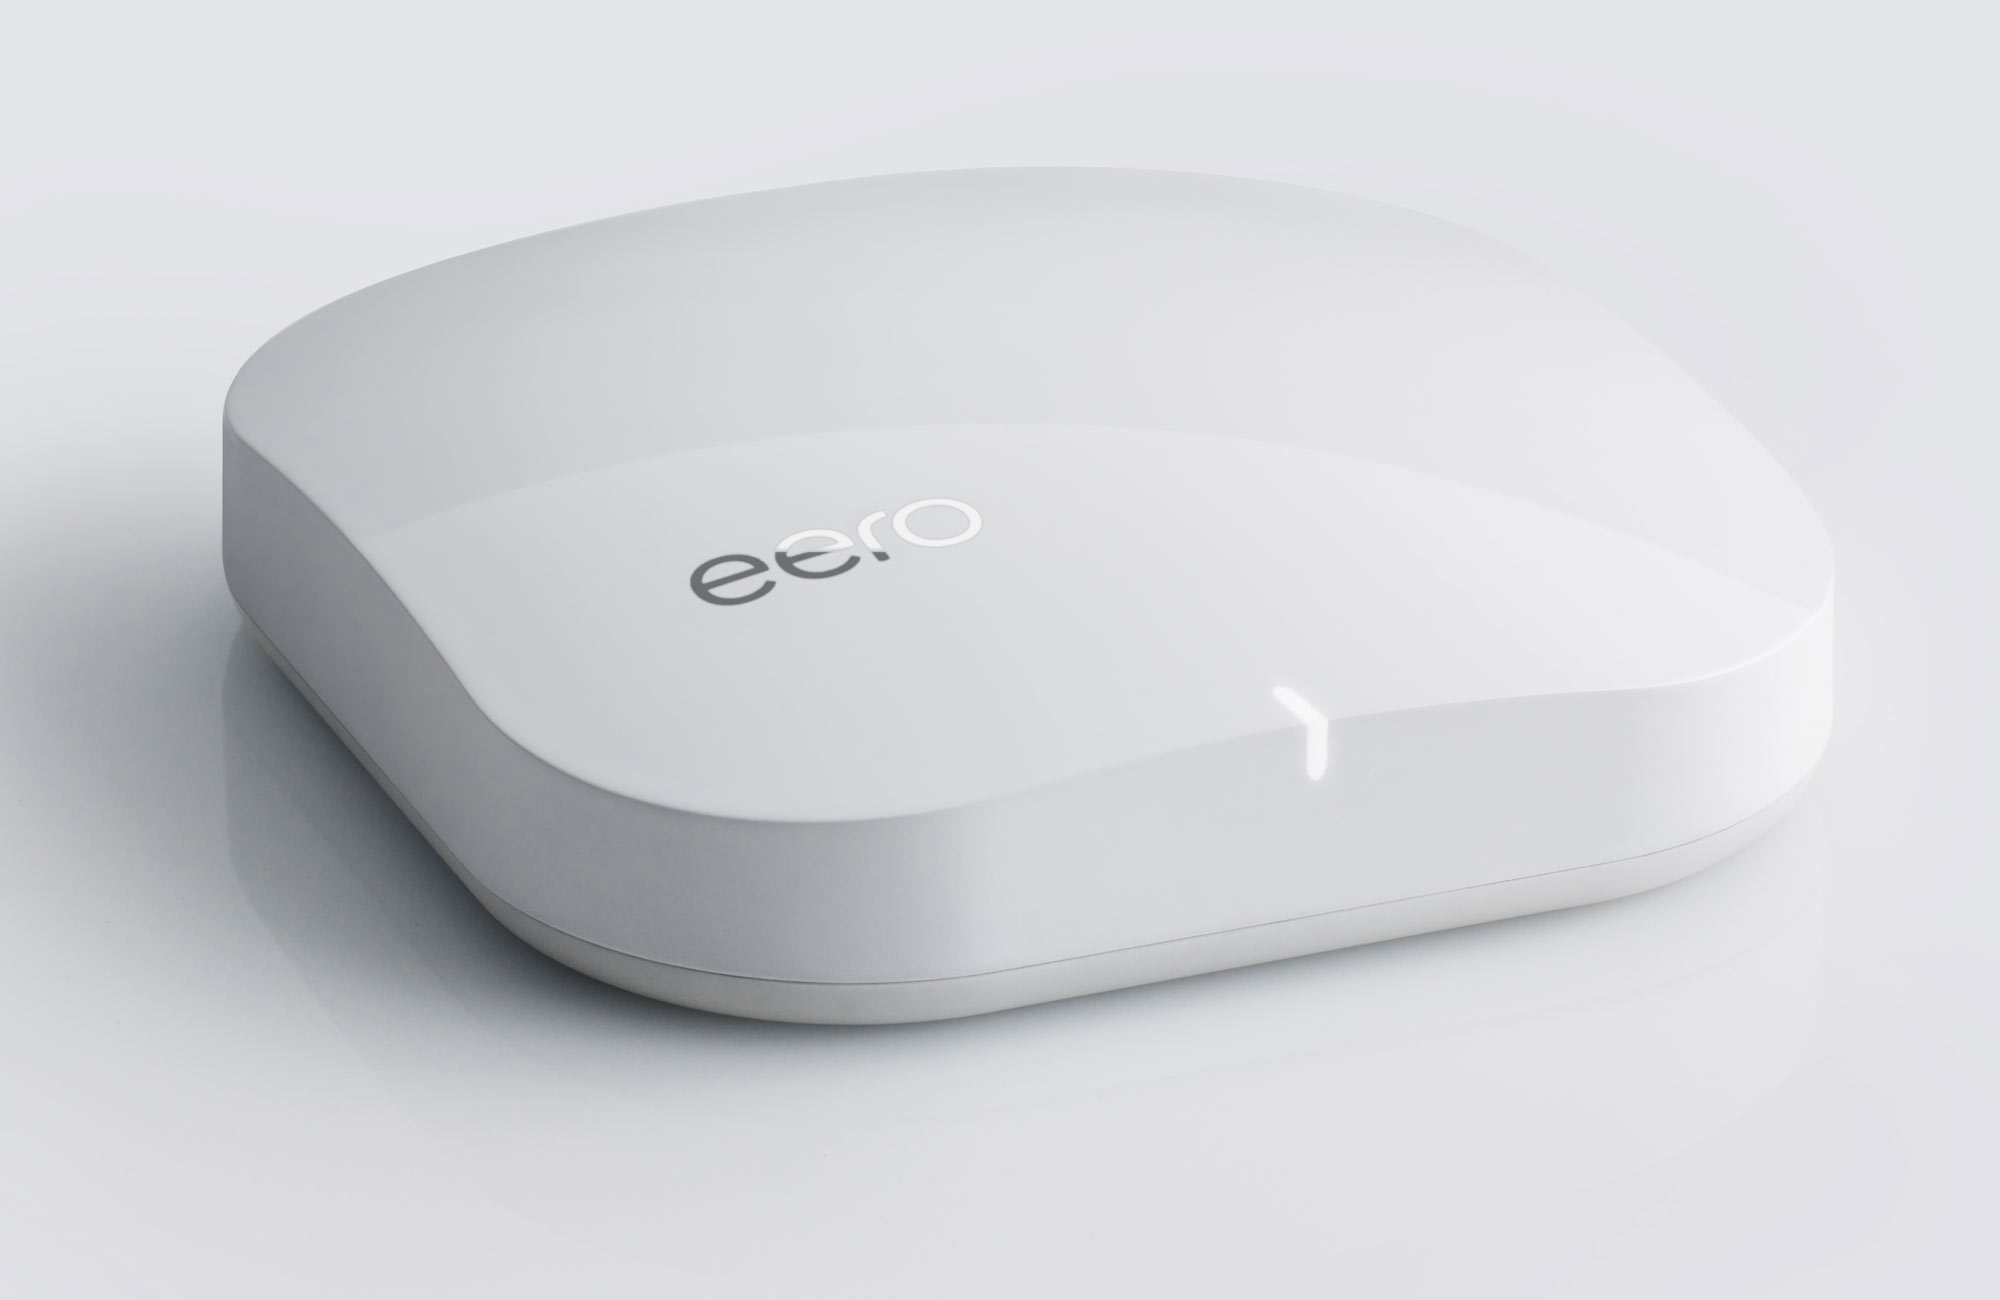 Eero hopes its network devices will look good enough to be seen around the house.